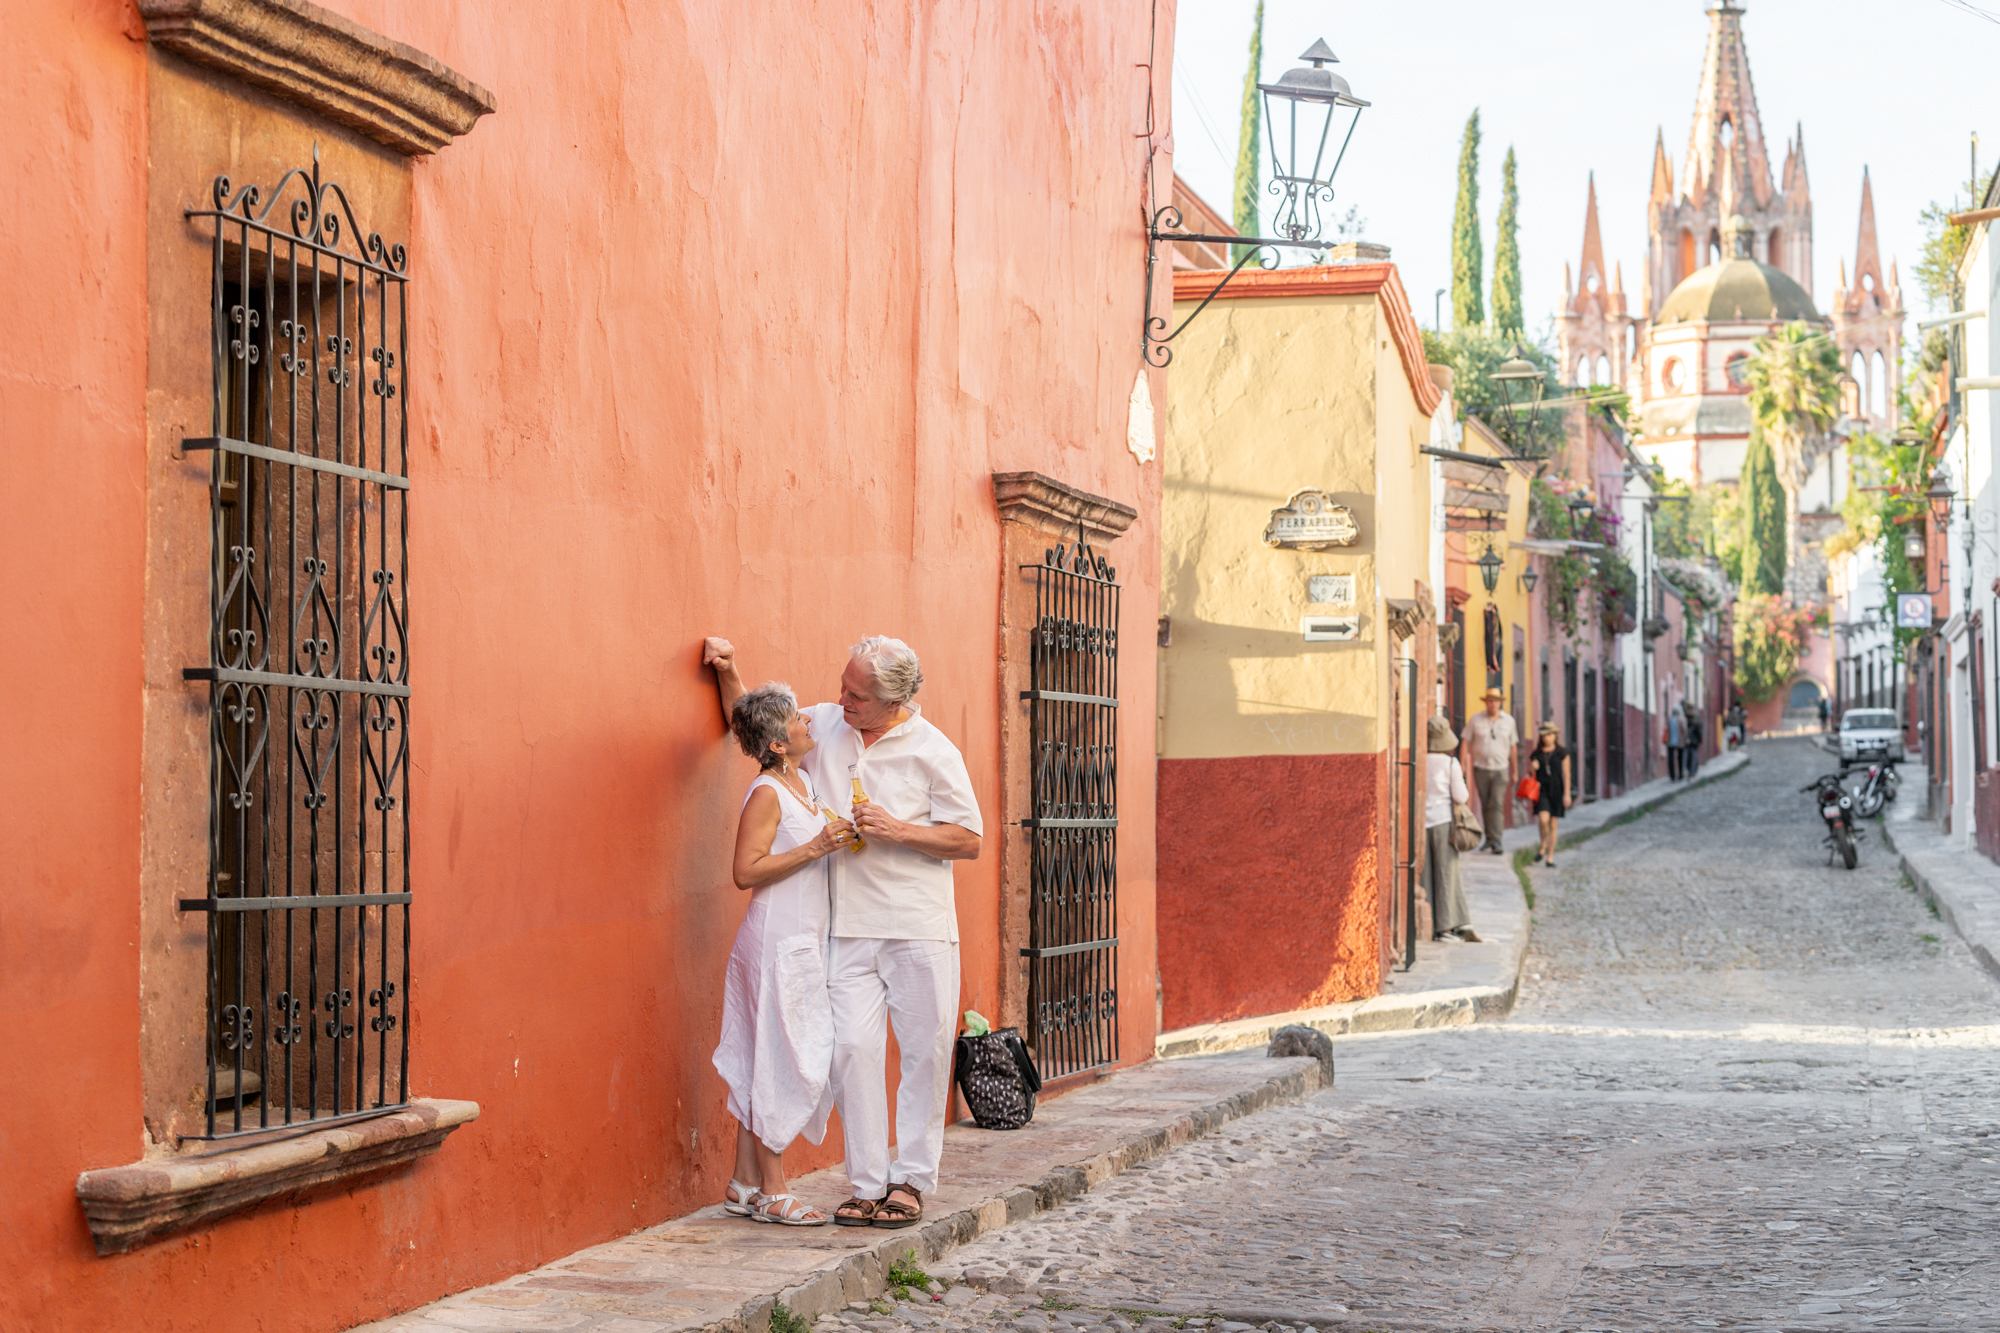 Photoshoot session in San Miguel de Allende with Suzanne and Leo-54.jpg